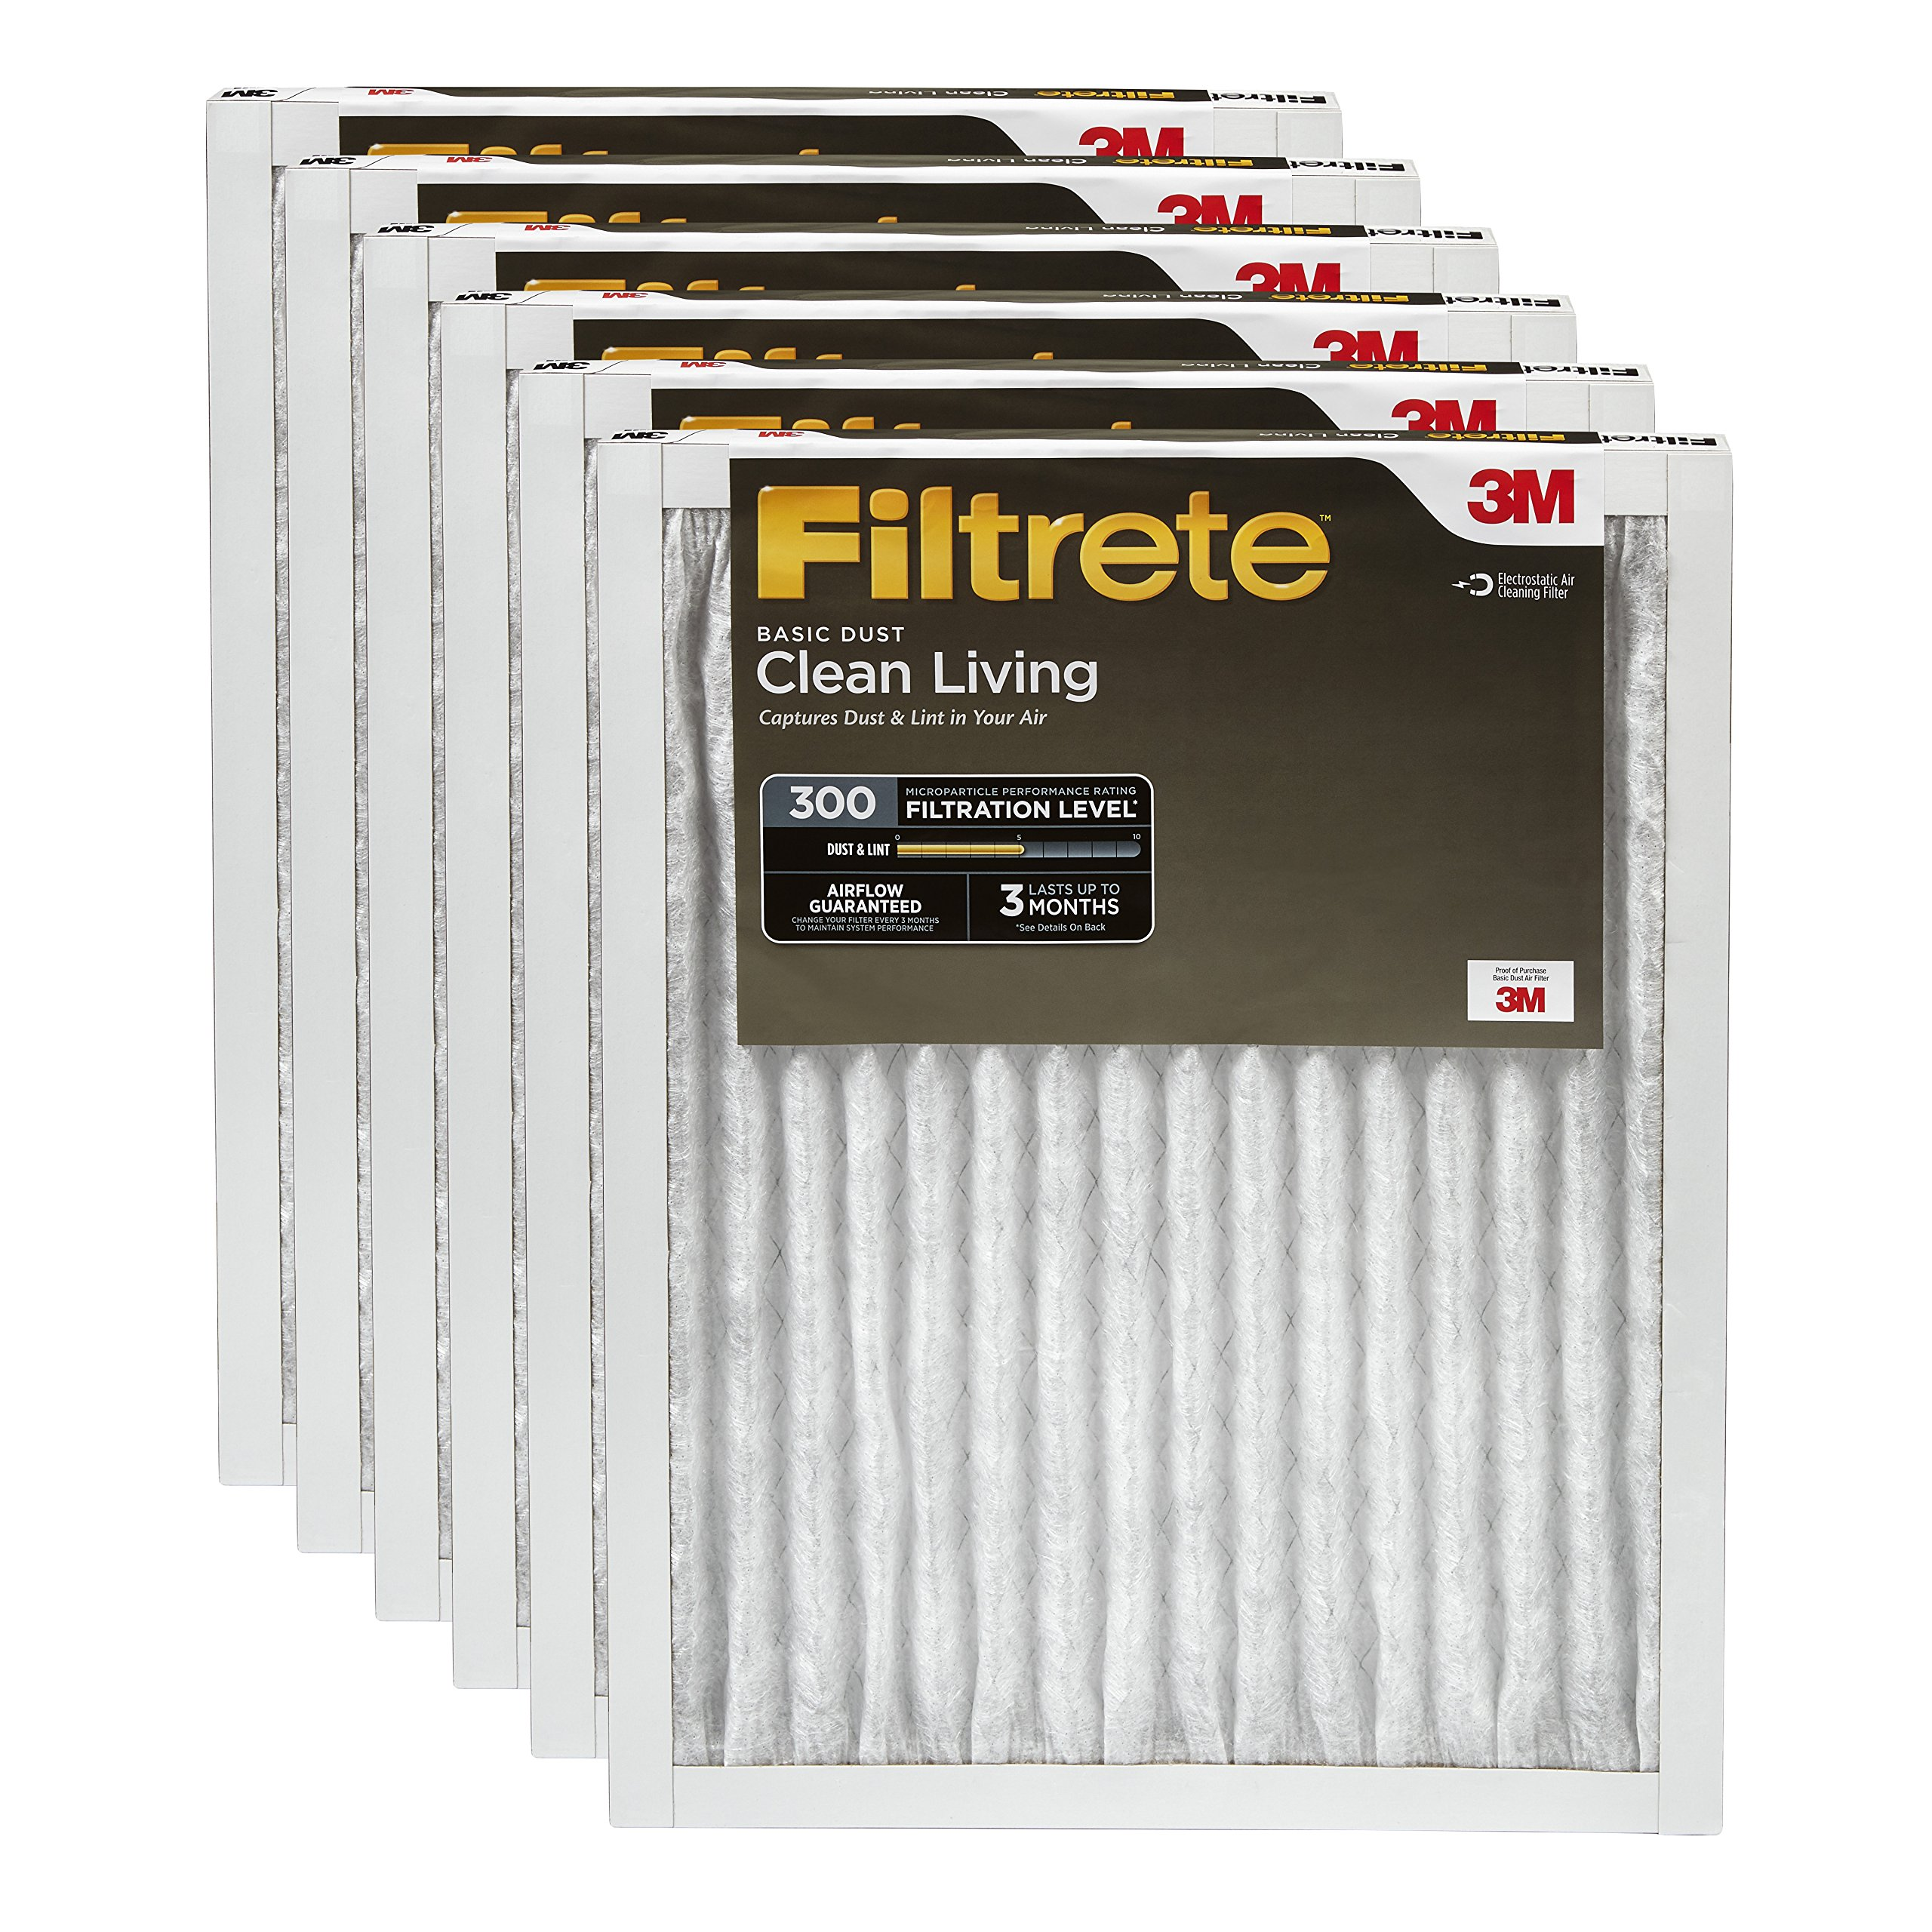 Filtrete Clean Living Basic Dust AC Furnace Air Filter, MPR 300, 10 x 20 x 1-Inches, 6-Pack